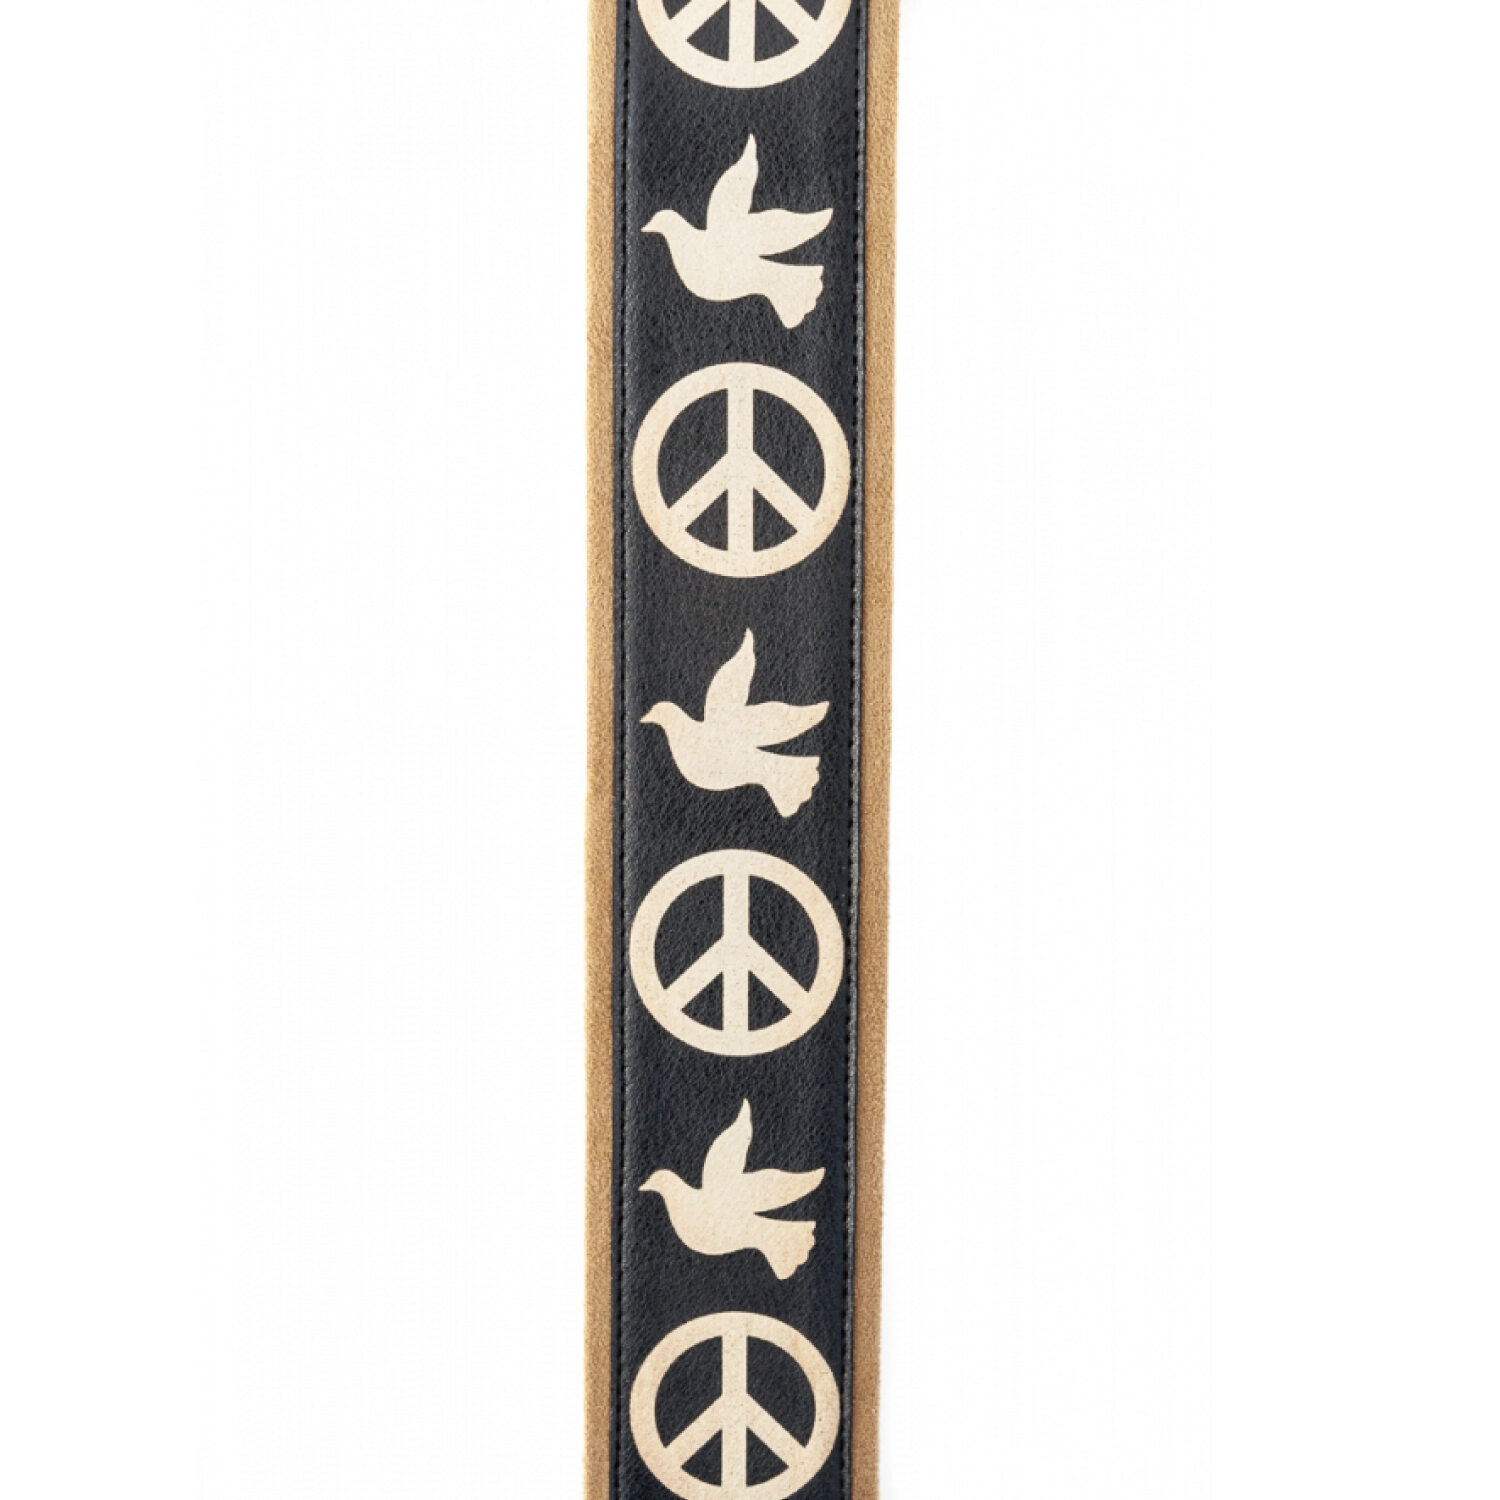 PEACE-AND-DOVES-NEIL-YOUNG-1500_3